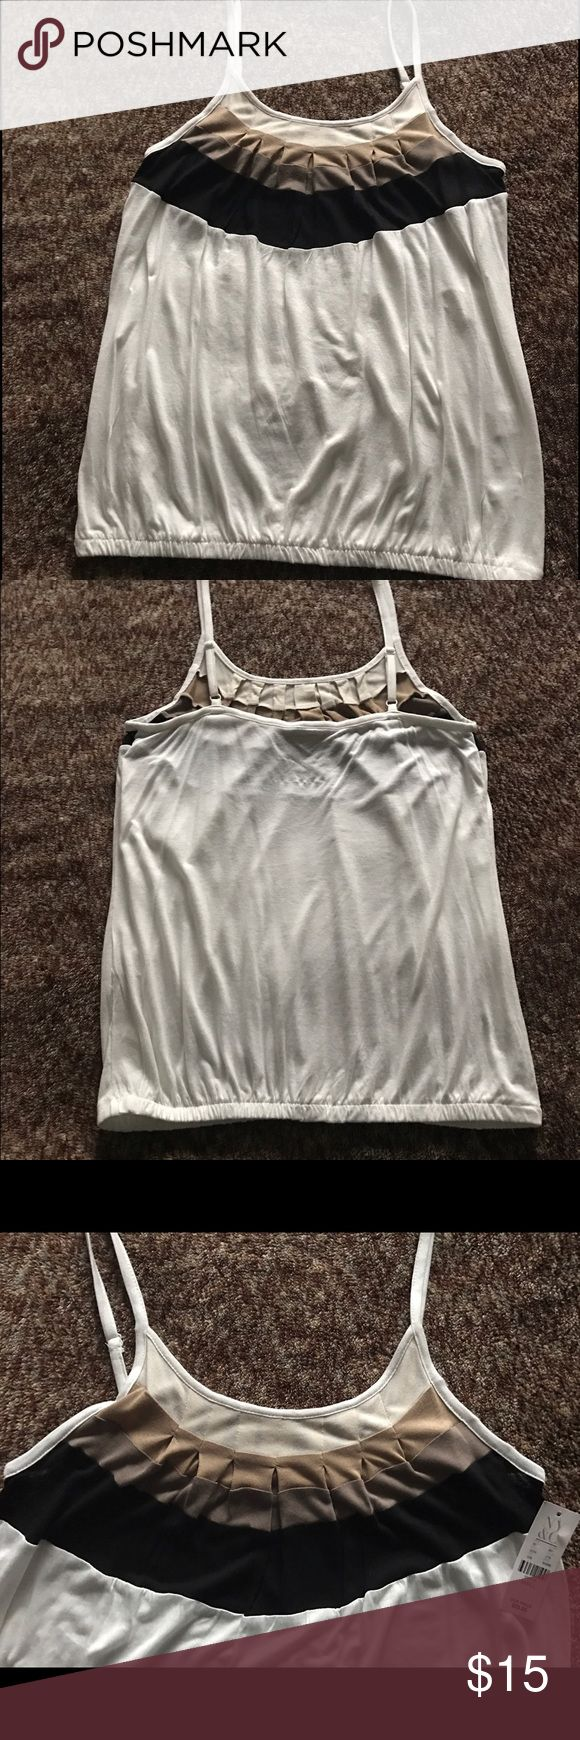 Spaghetti strap tank top New with tags! Never worn! Neutral stripes white spaghetti strap tank top  Perfect for the summer   ☀️☀️☀️  #black #black #beige #white #comfy #cute #summer #tanktop #spaghettistrap New York & Company Tops Tank Tops